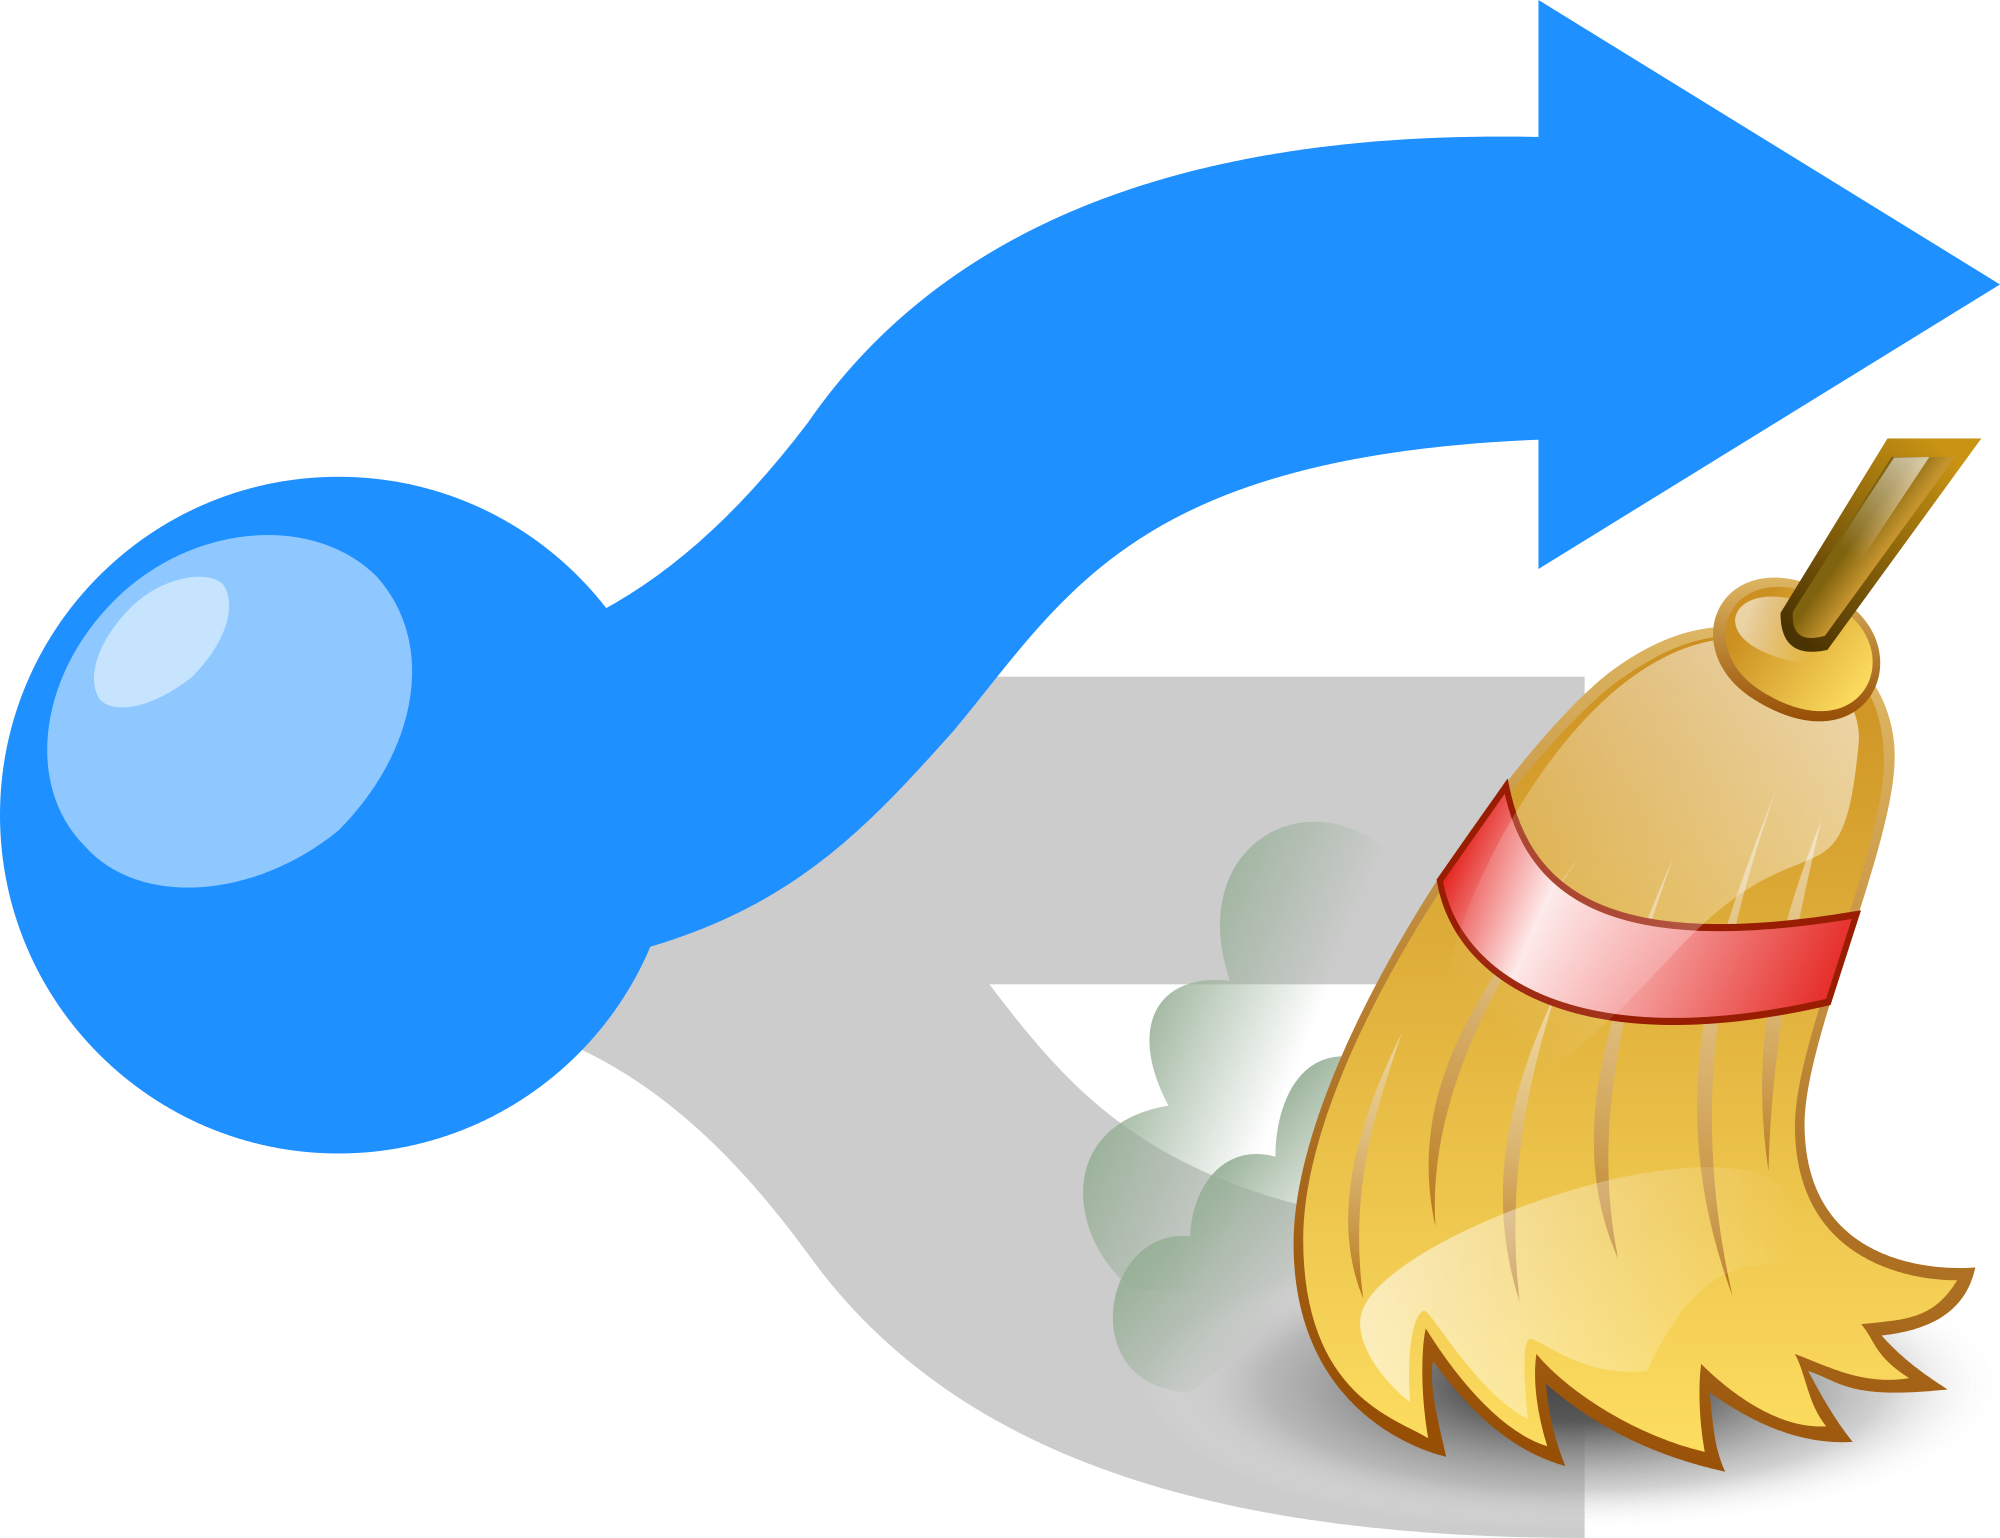 Dust clipart broom sweeping. File disambig azure icon